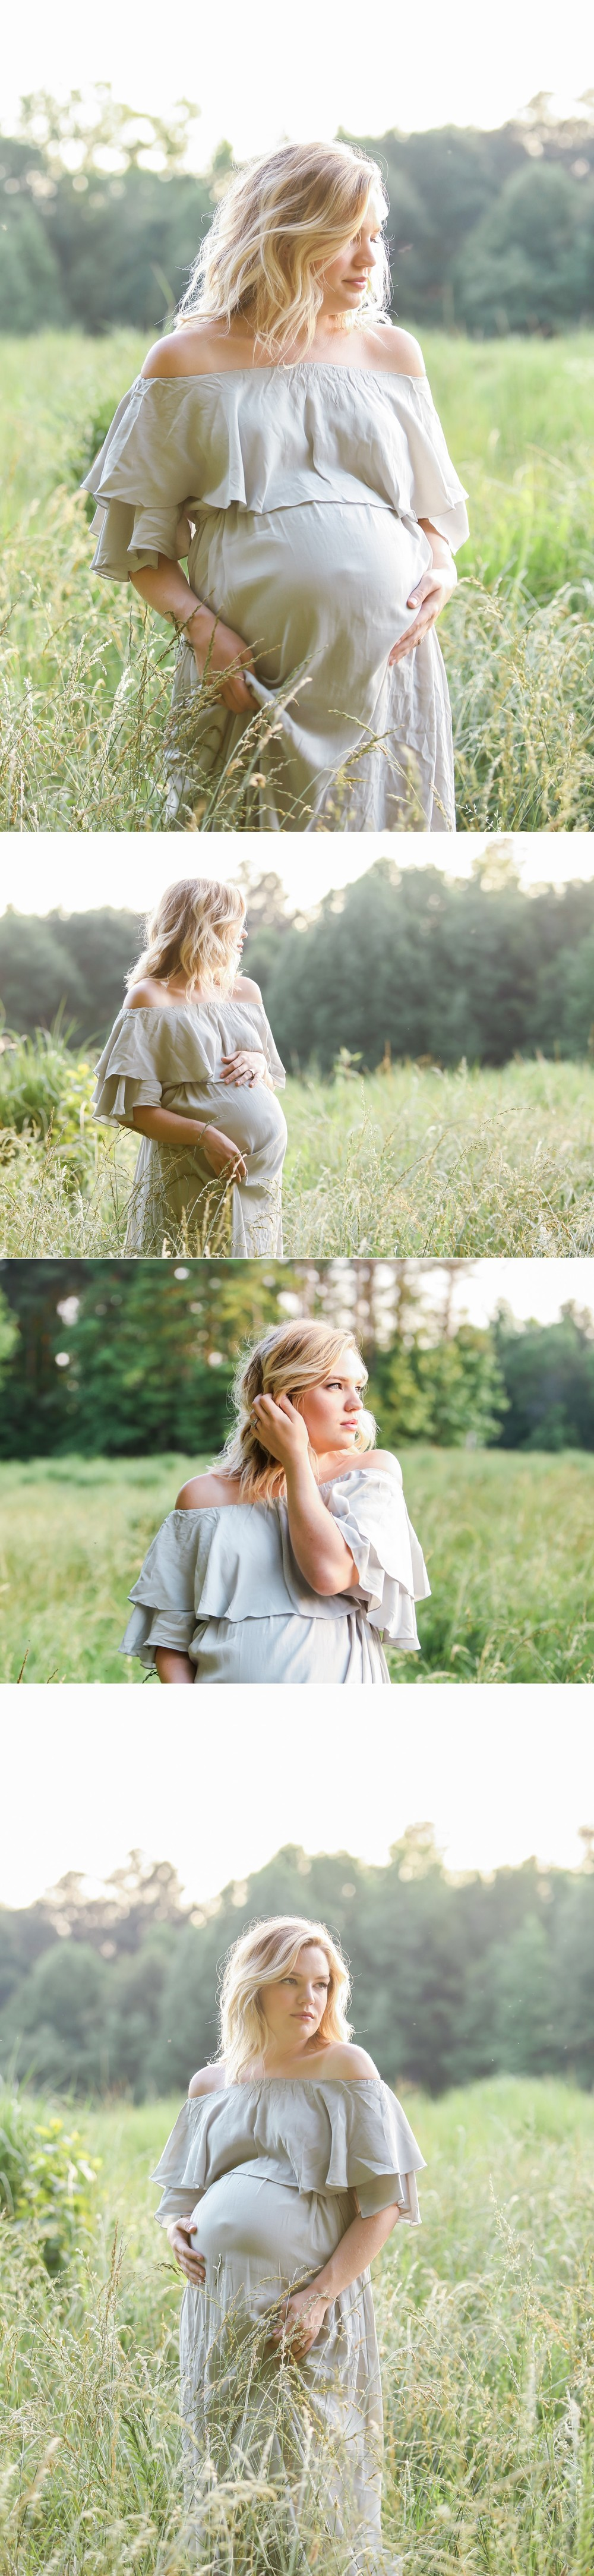 maternity-portraits-lynchburg-virginia-pictures_0004.jpg